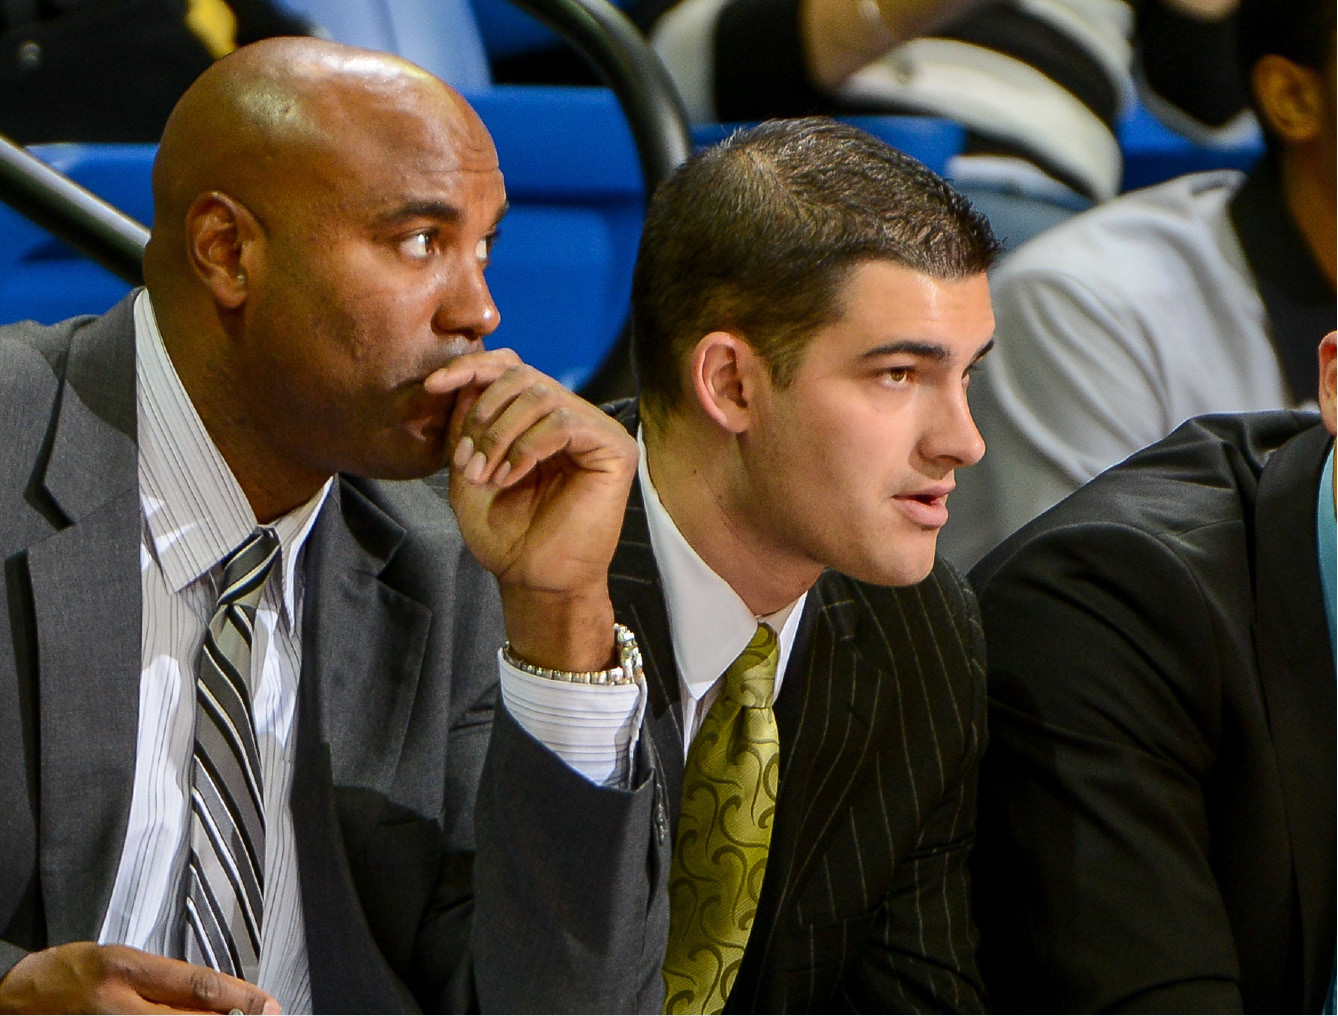 Mike Papale and Scott Burrell, shown here coaching Quinnipiac, are the new coach and head coach at Southern Connecticut State University. Papale, of Wallingford, was officially named Burrell